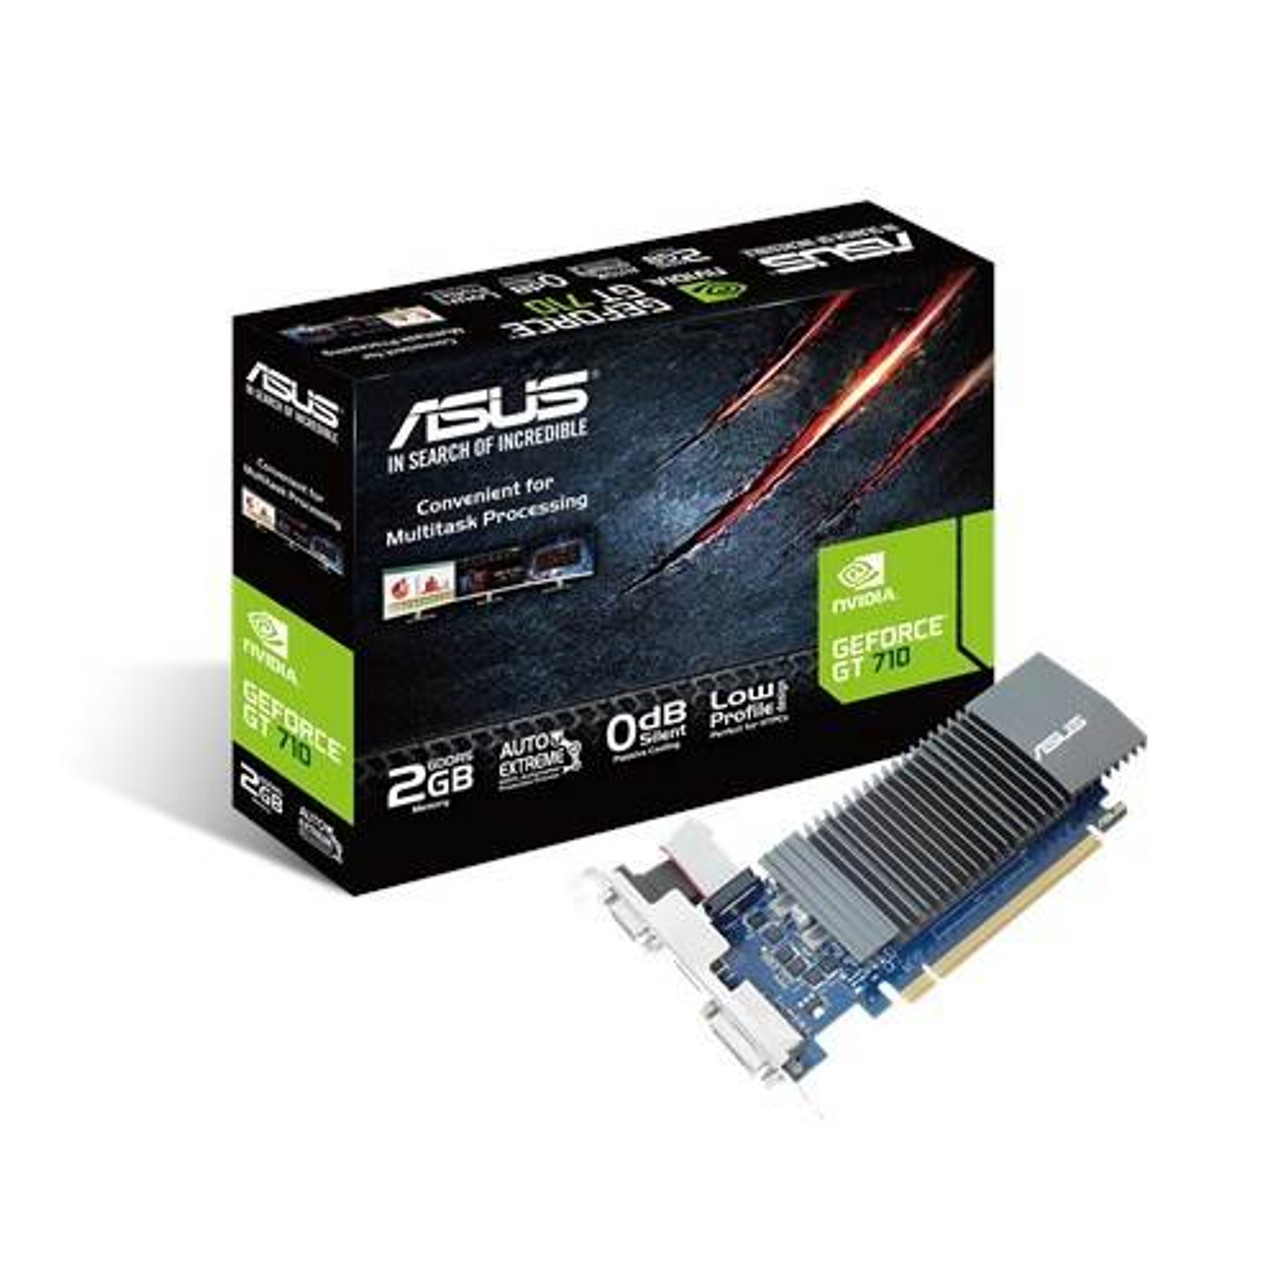 Image for Asus GeForce GT710 2GB GDDR5 Video Card CX Computer Superstore